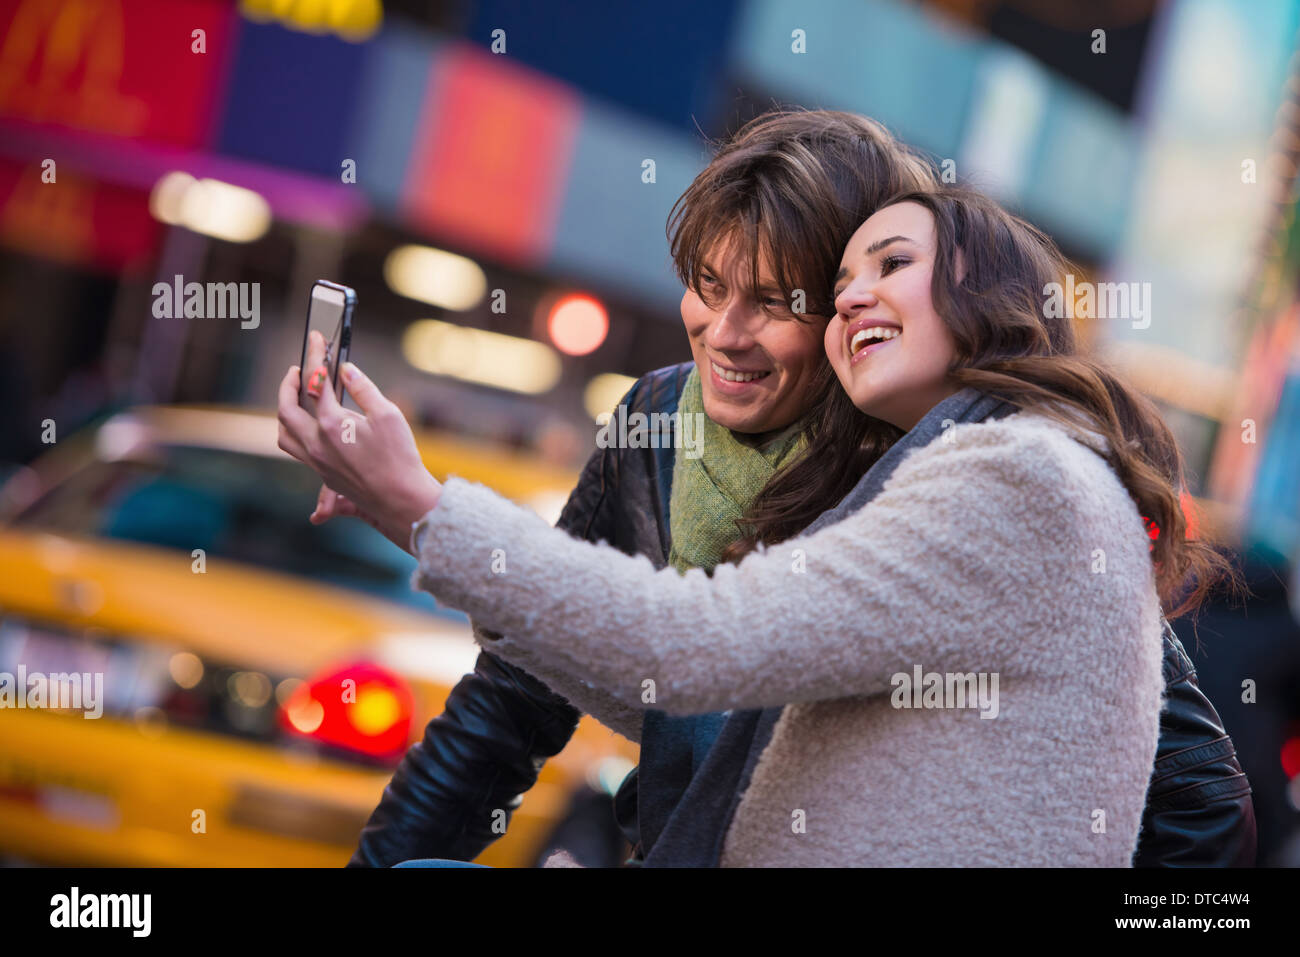 Young couple taking a selfie, New York City, USA - Stock Image